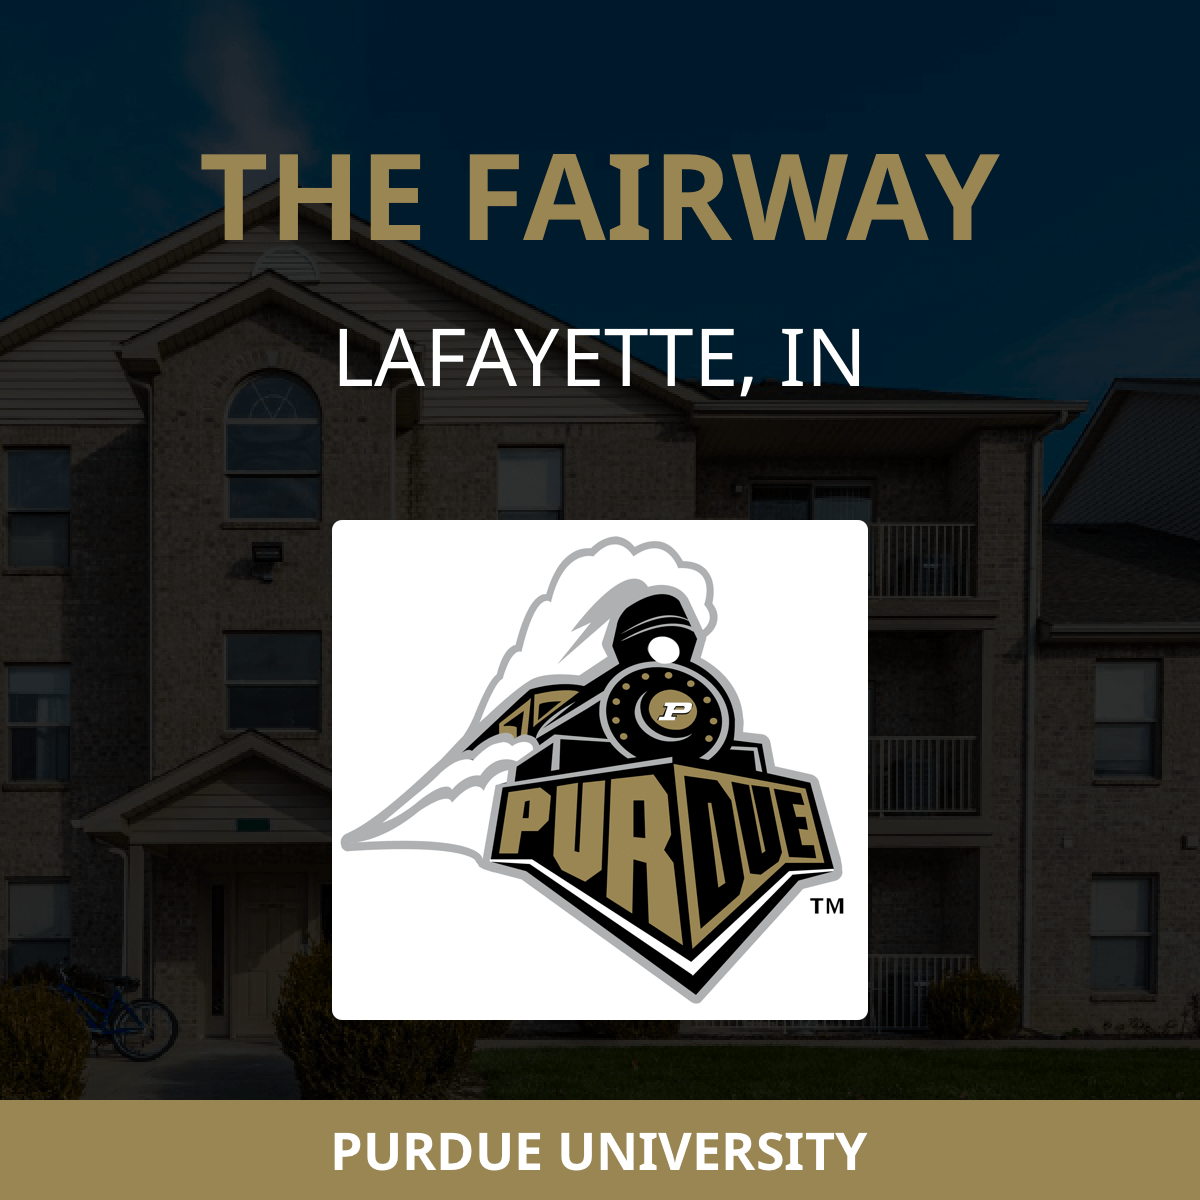 Fairway-Off-campus-Student-Housing-apartments-near-Lafayette-IN